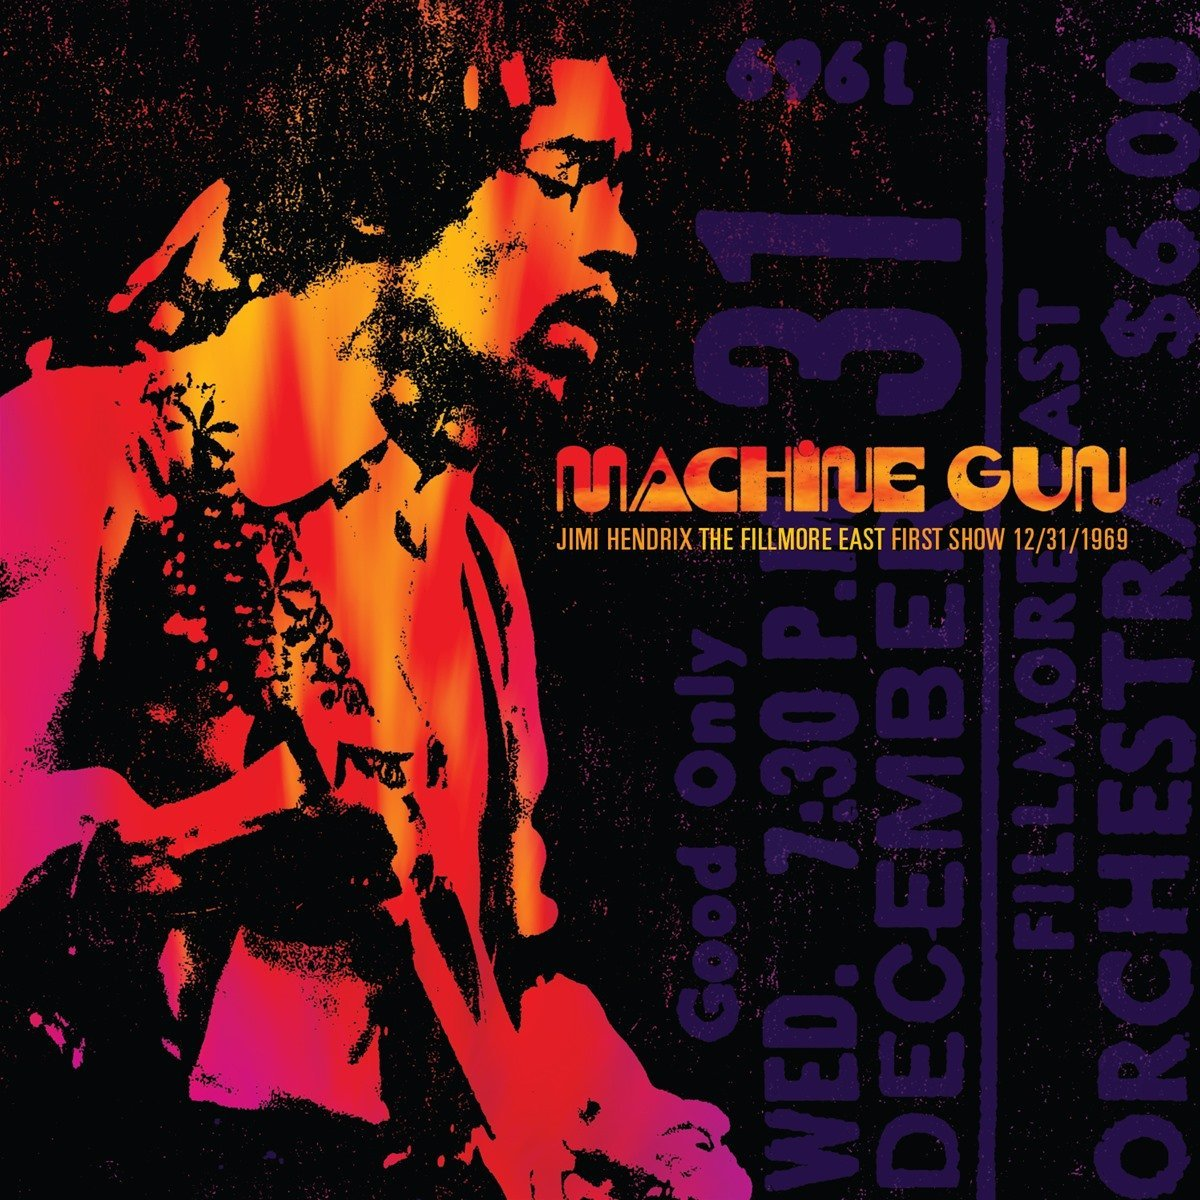 Jimi Hendrix Machine Gun: The Fillmore East First Show 12/31/69